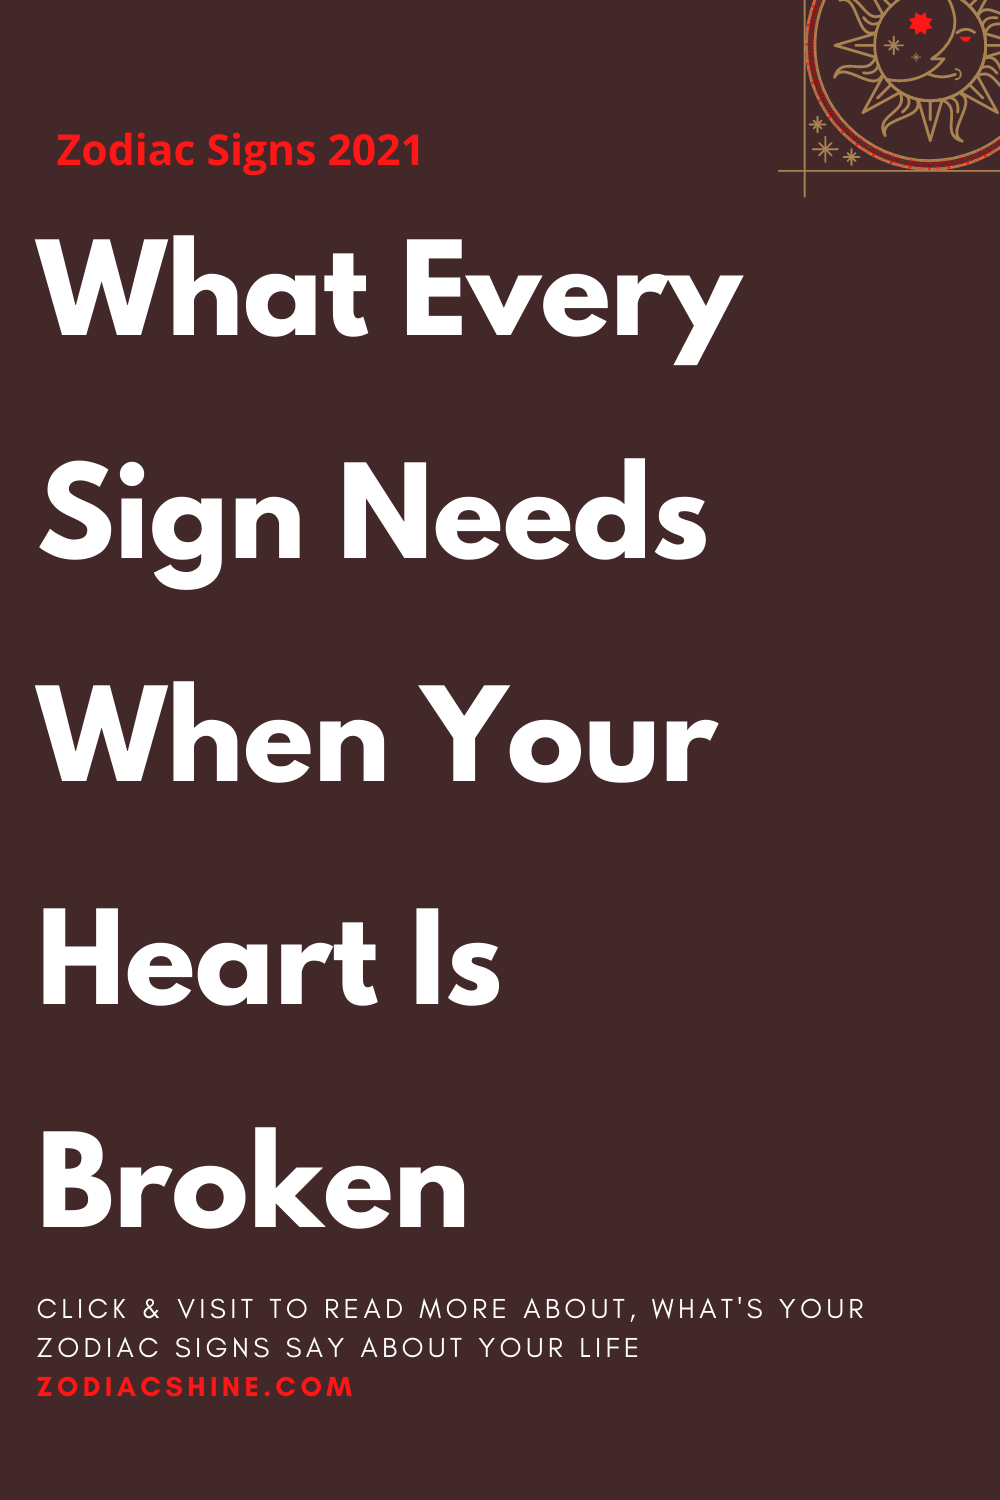 What Every Sign Needs When Your Heart Is Broken